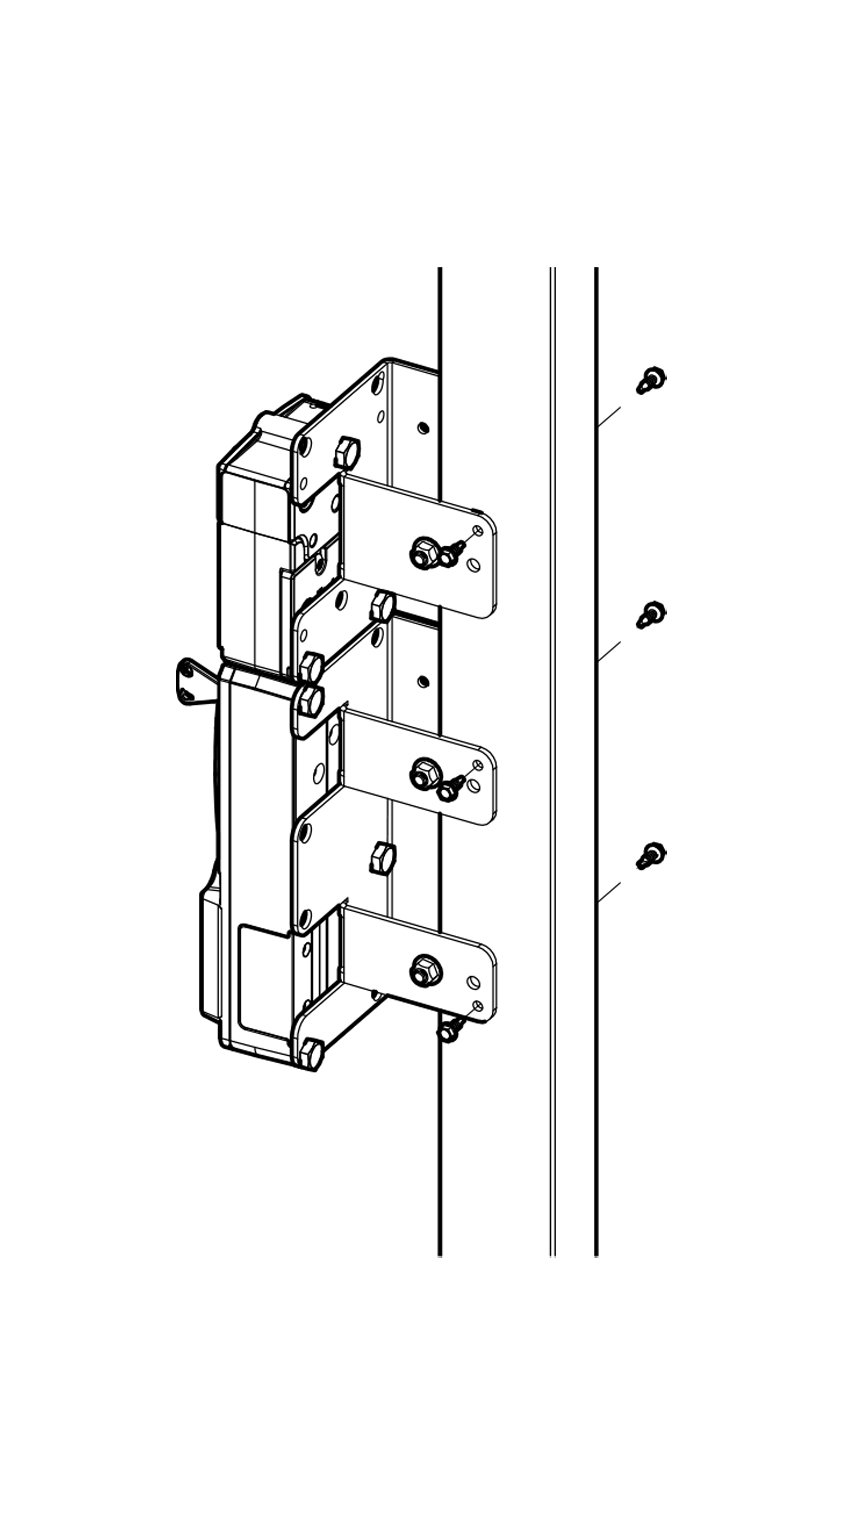 troax mounting brackets for safety switches